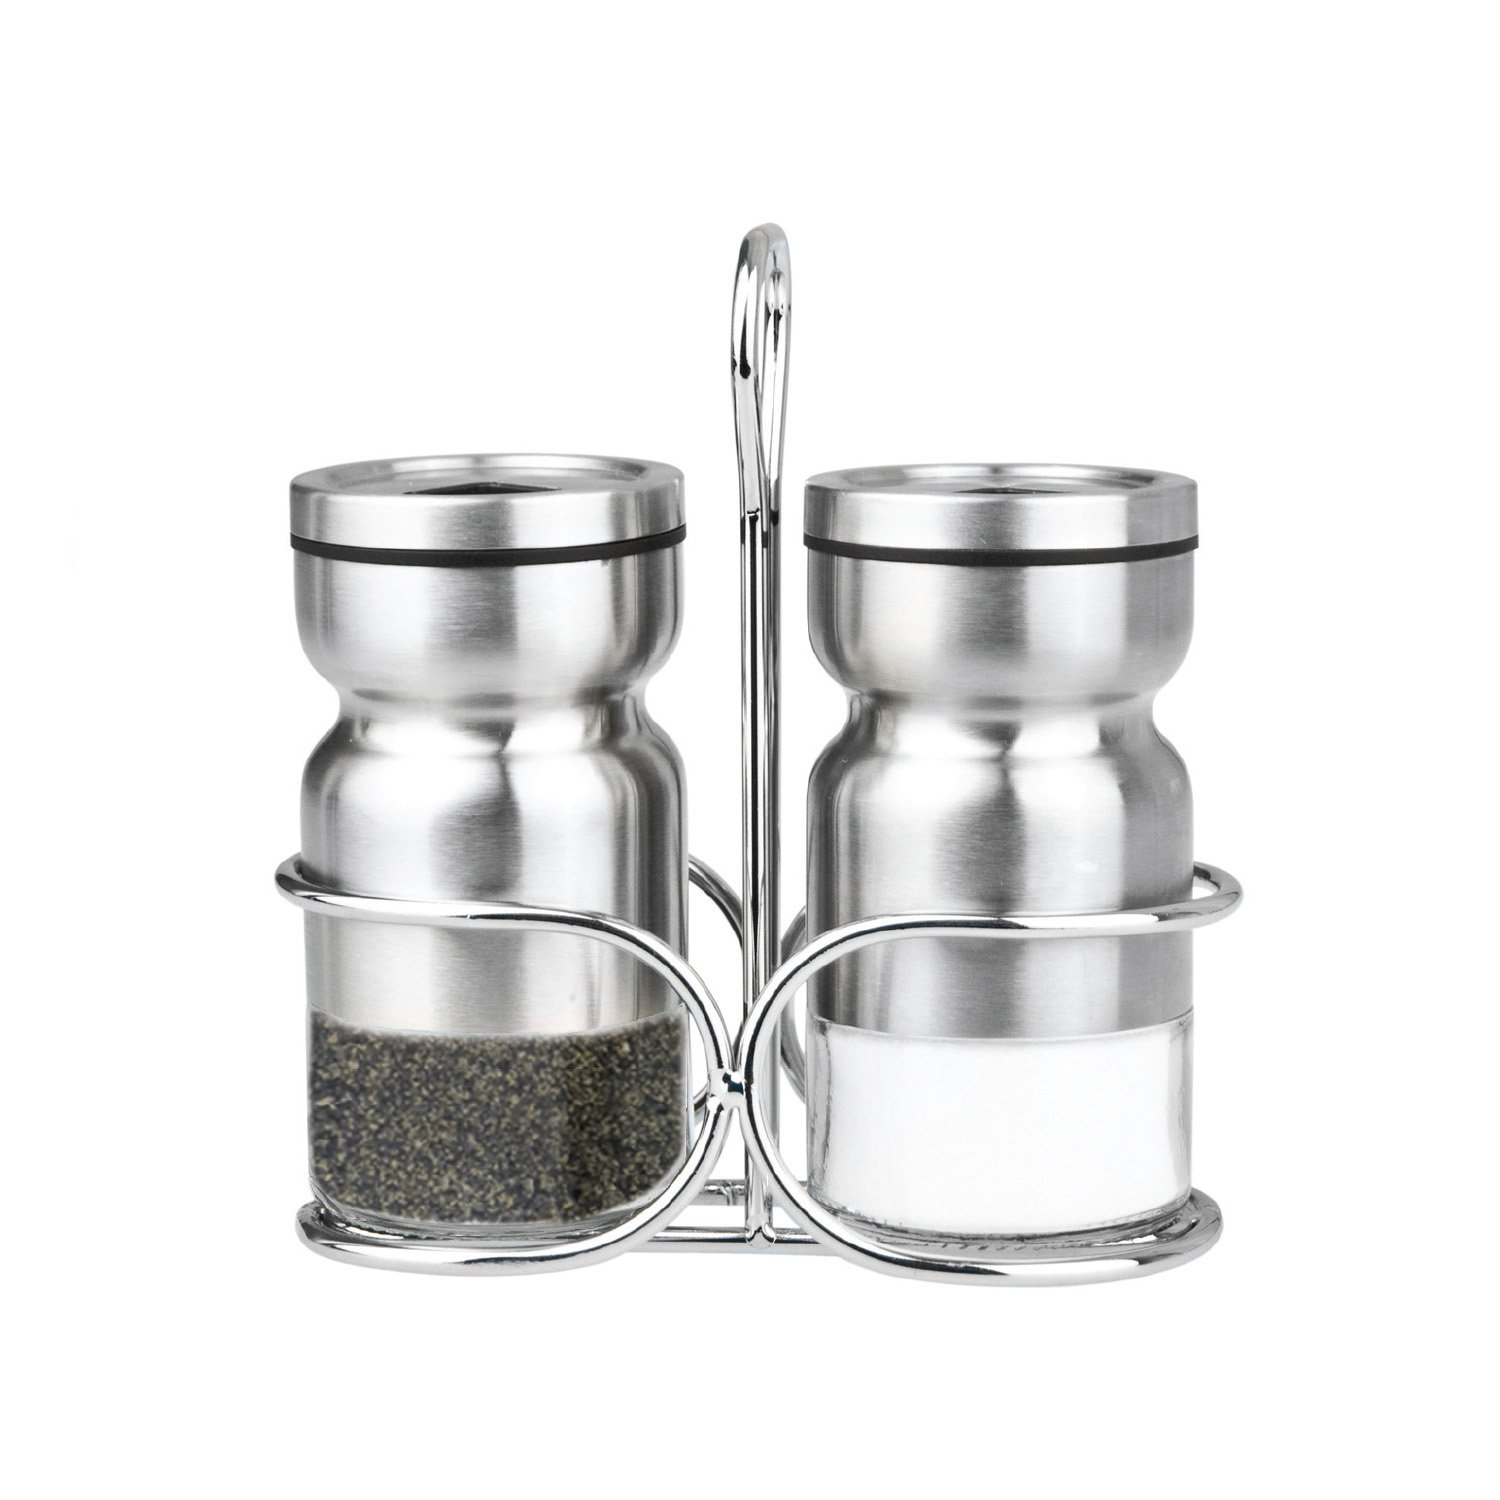 Cuisinox Salt and Pepper Shaker Set with Caddy Silver